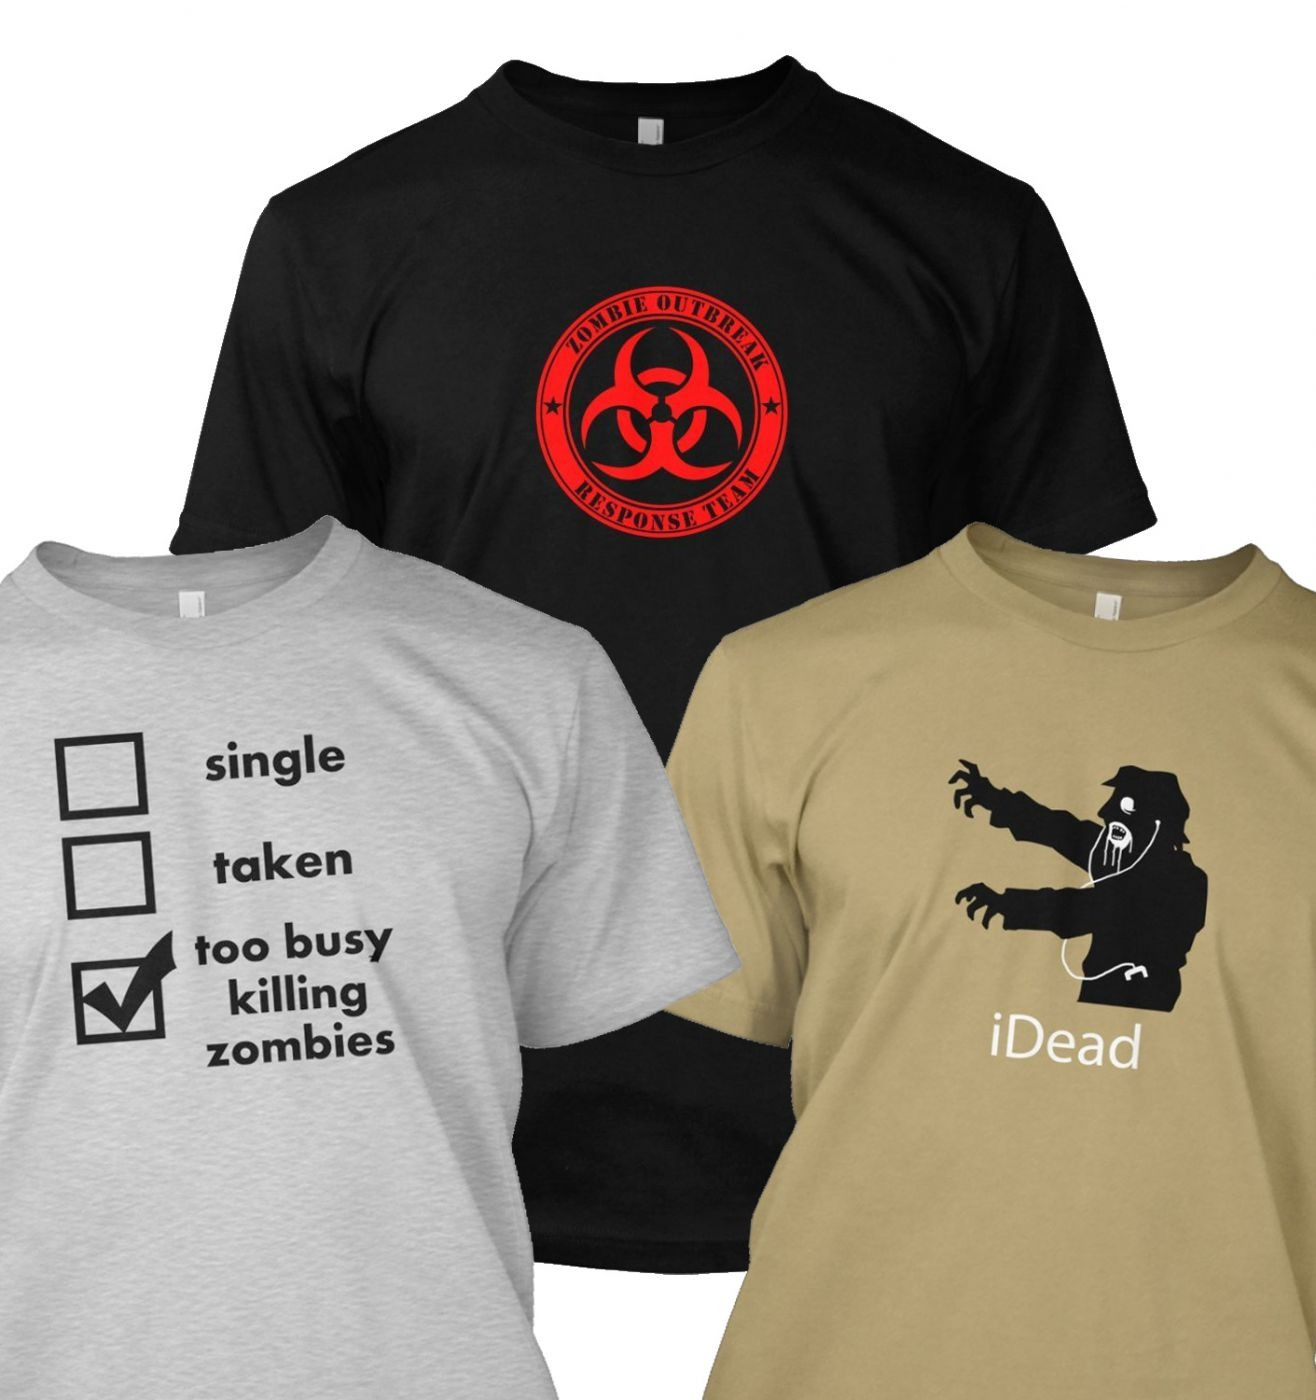 Zombie t-shirt bundle